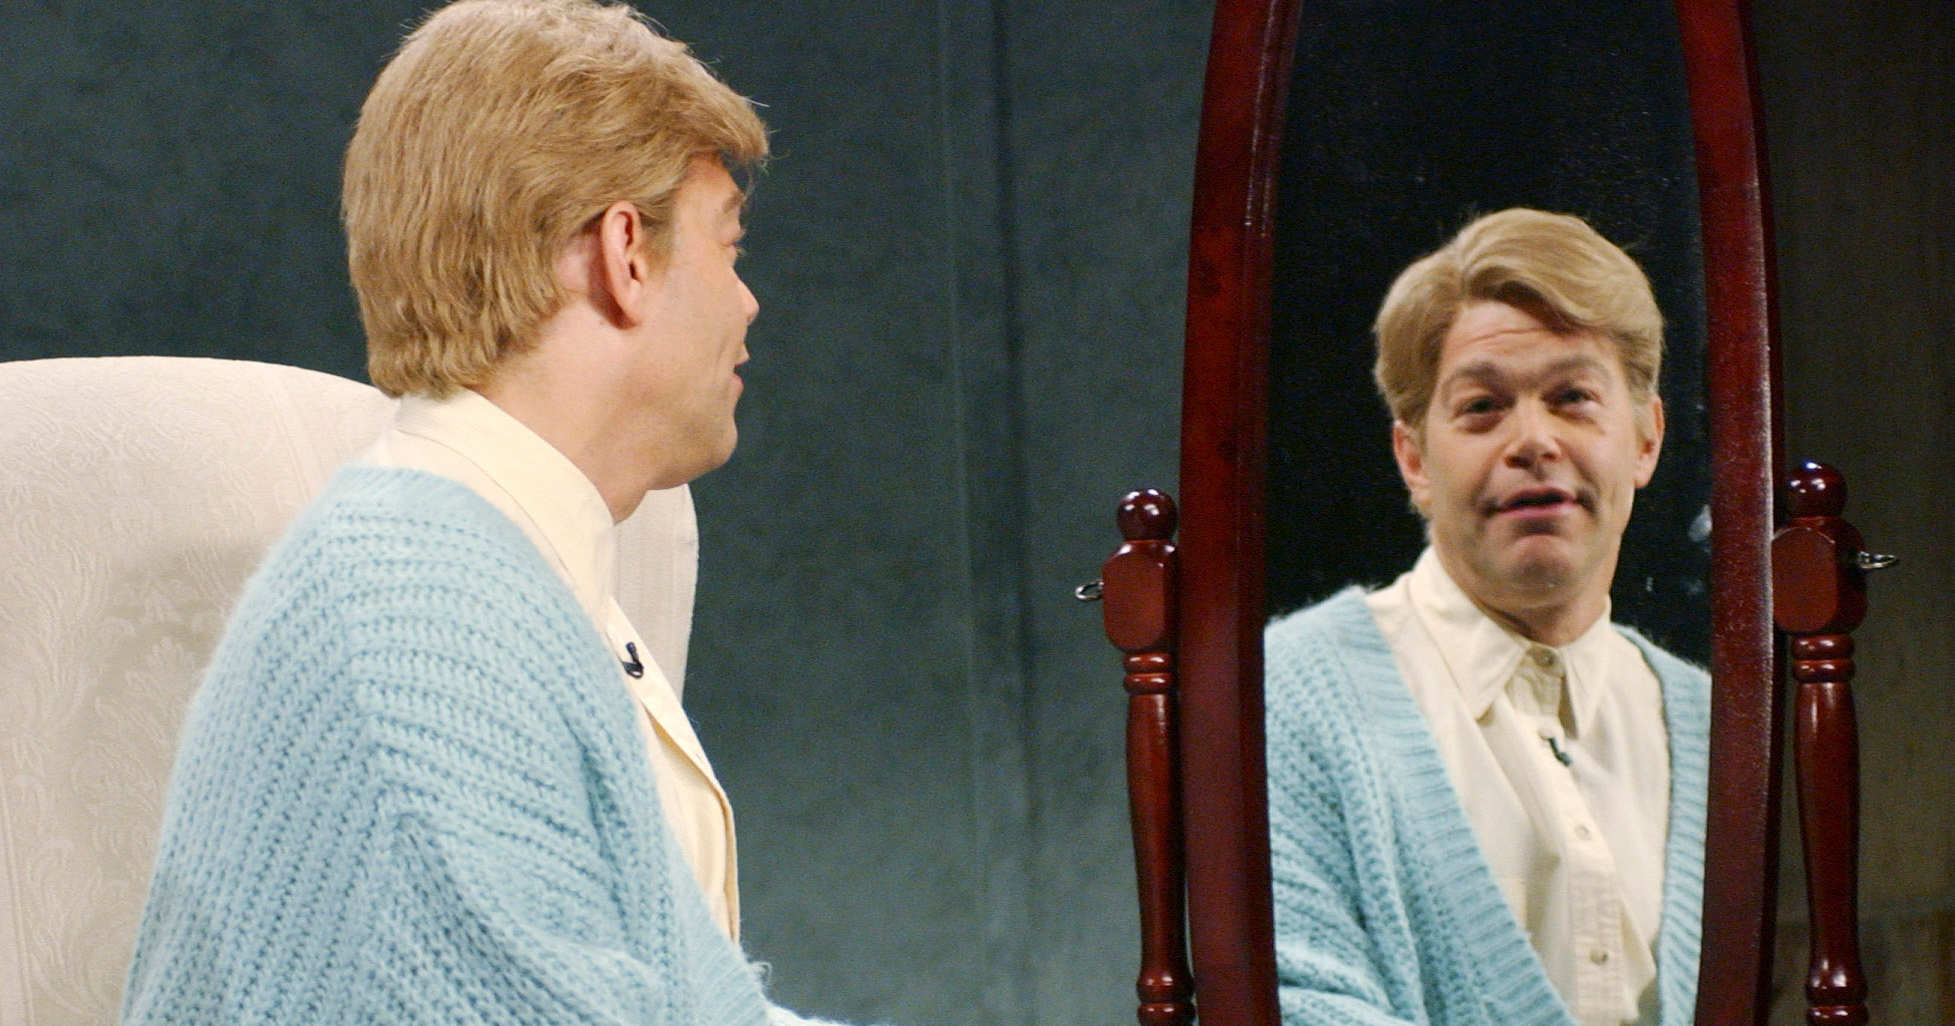 Stuart Smalley.